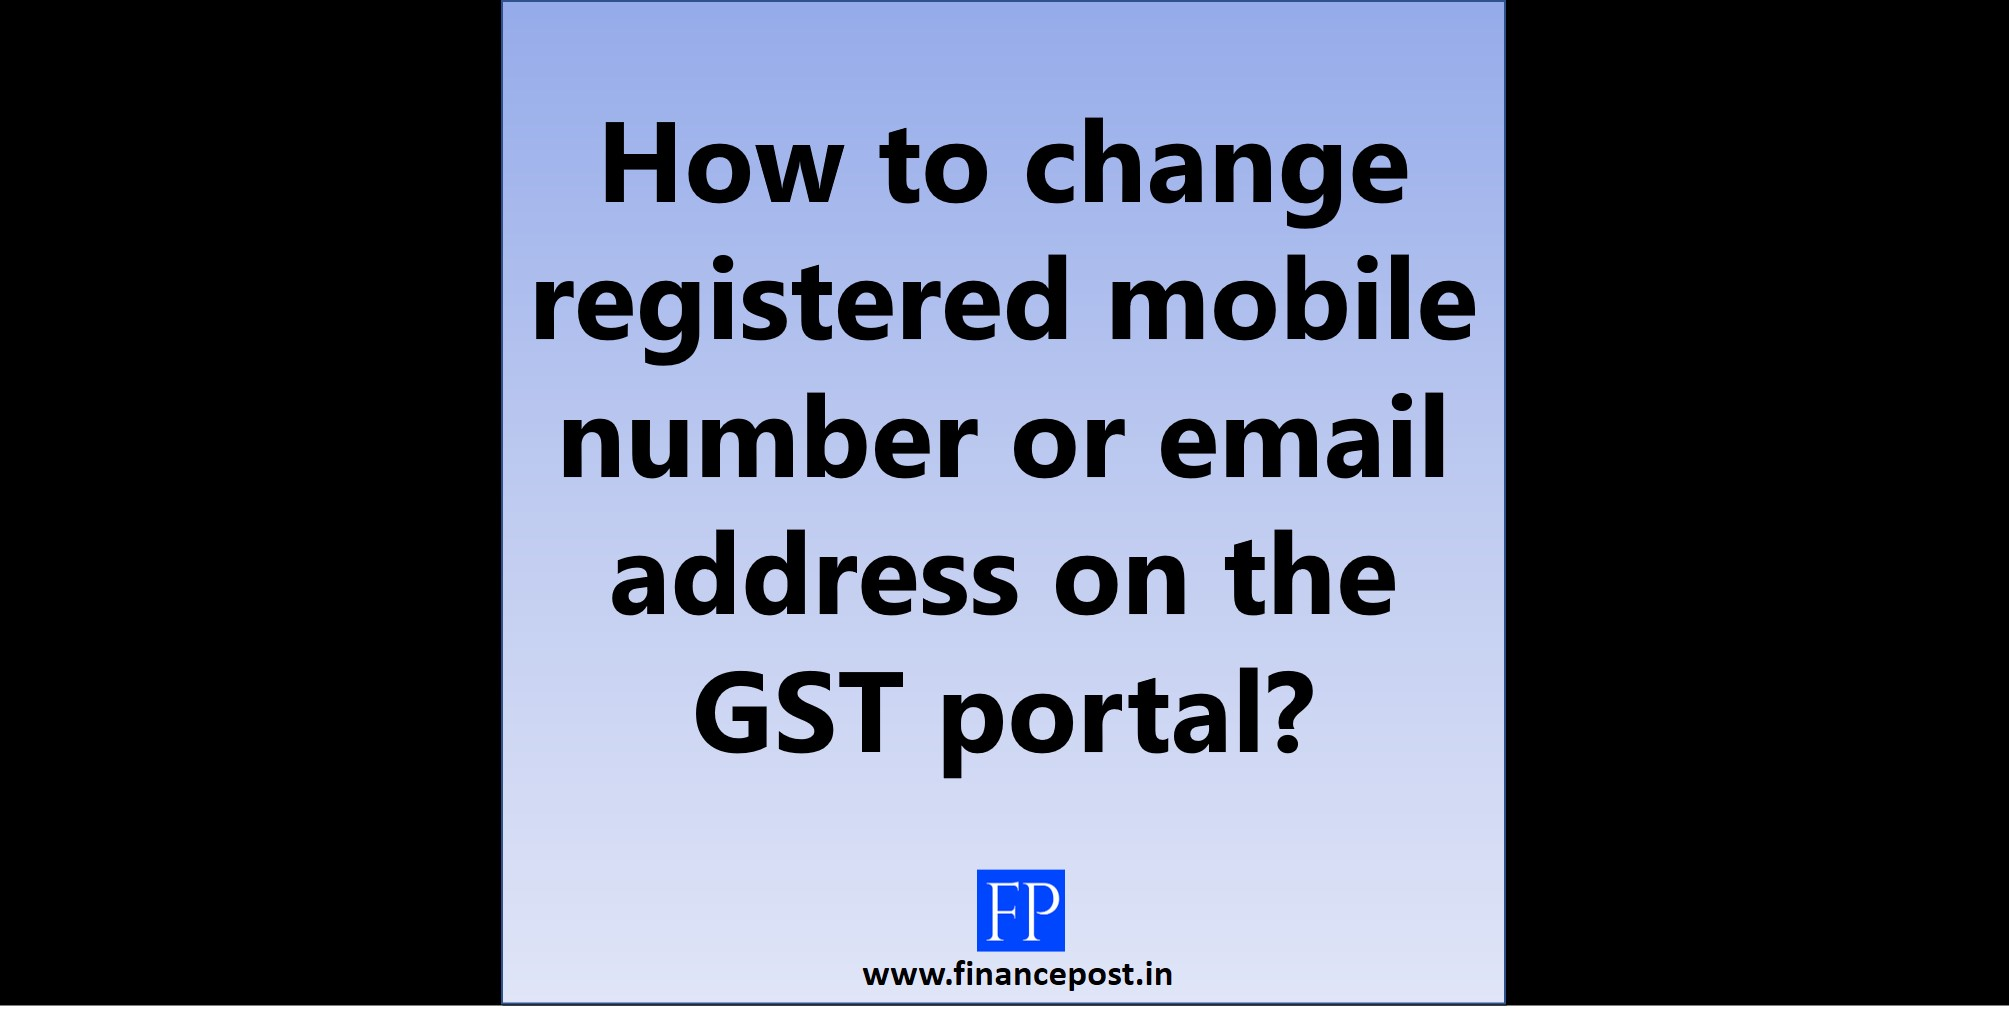 How to change registered mobile number or email address on the GST portal